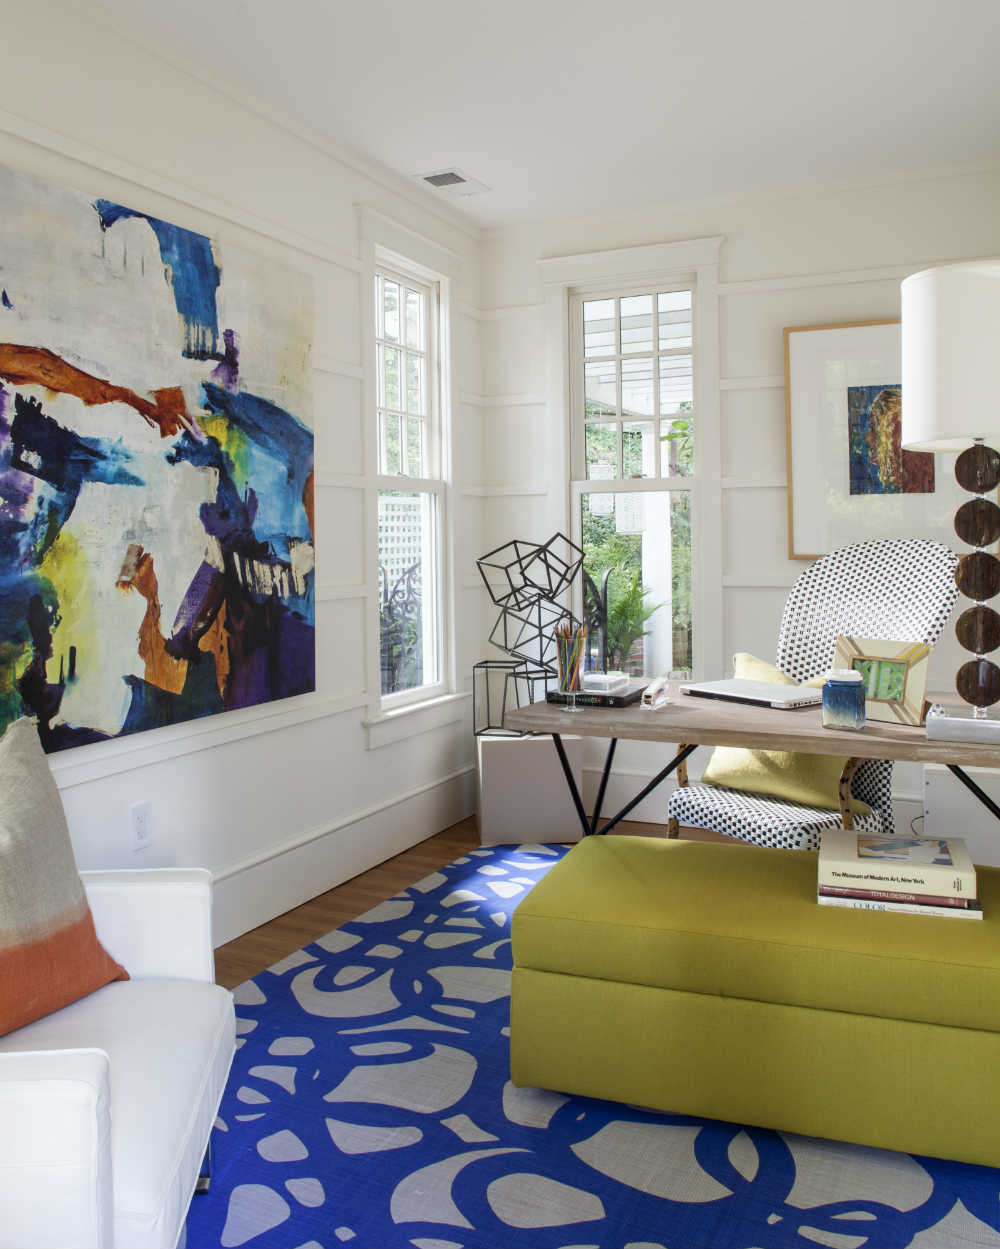 Modern. Youthful. Artsy. This room begs you to create something amazing. </br>(Arlington, Virginia)